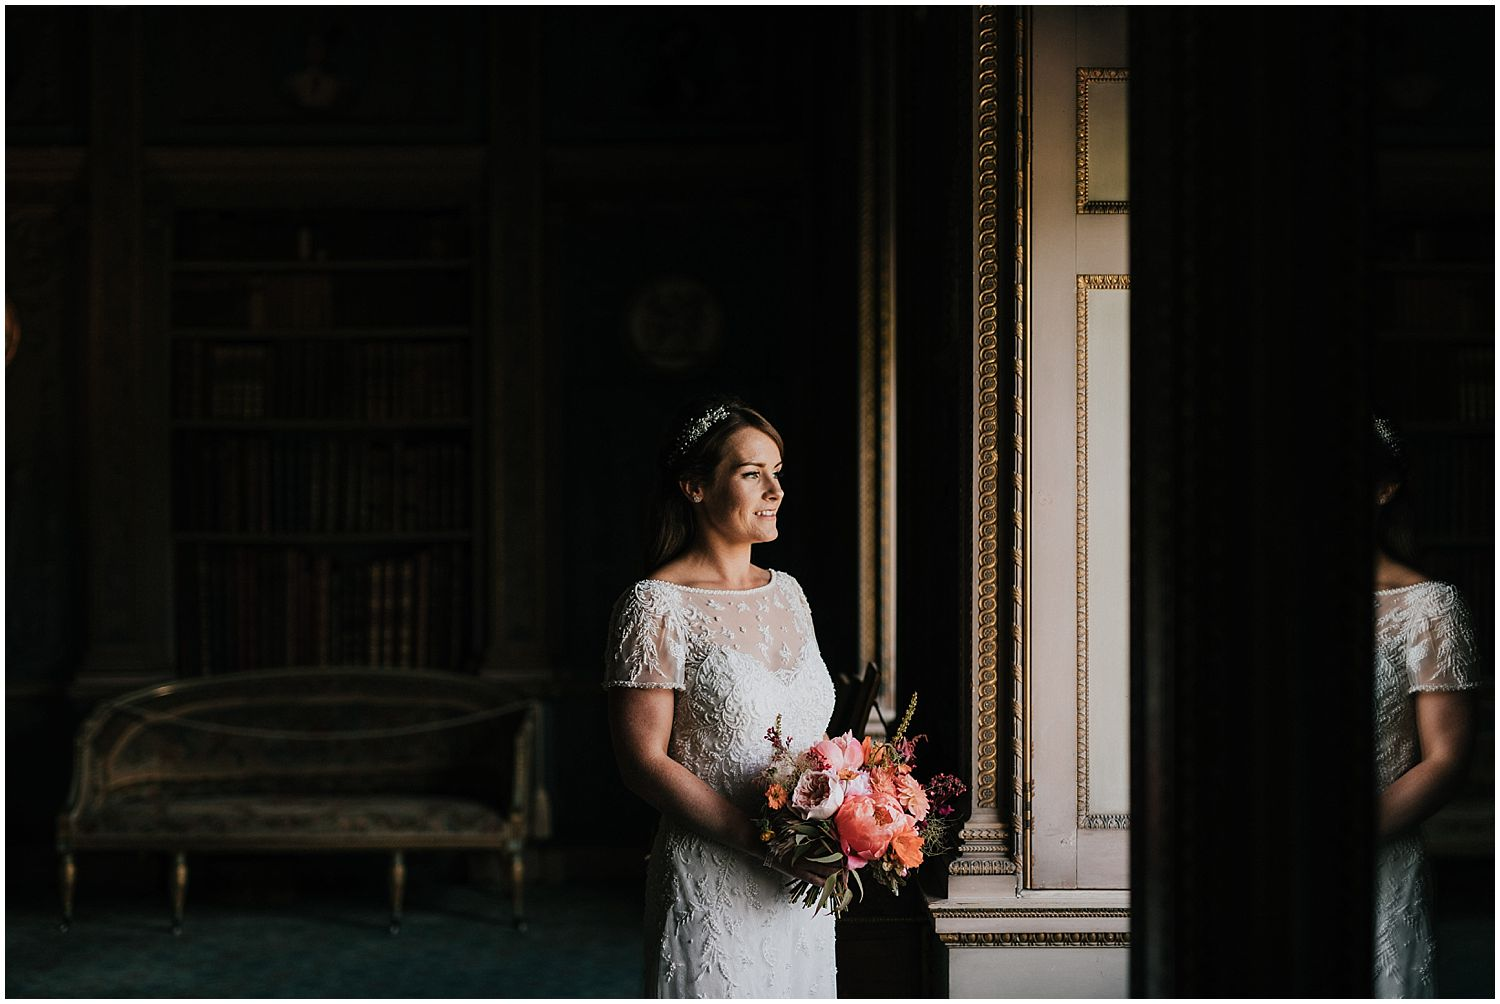 Syon House London wedding_0021.jpg